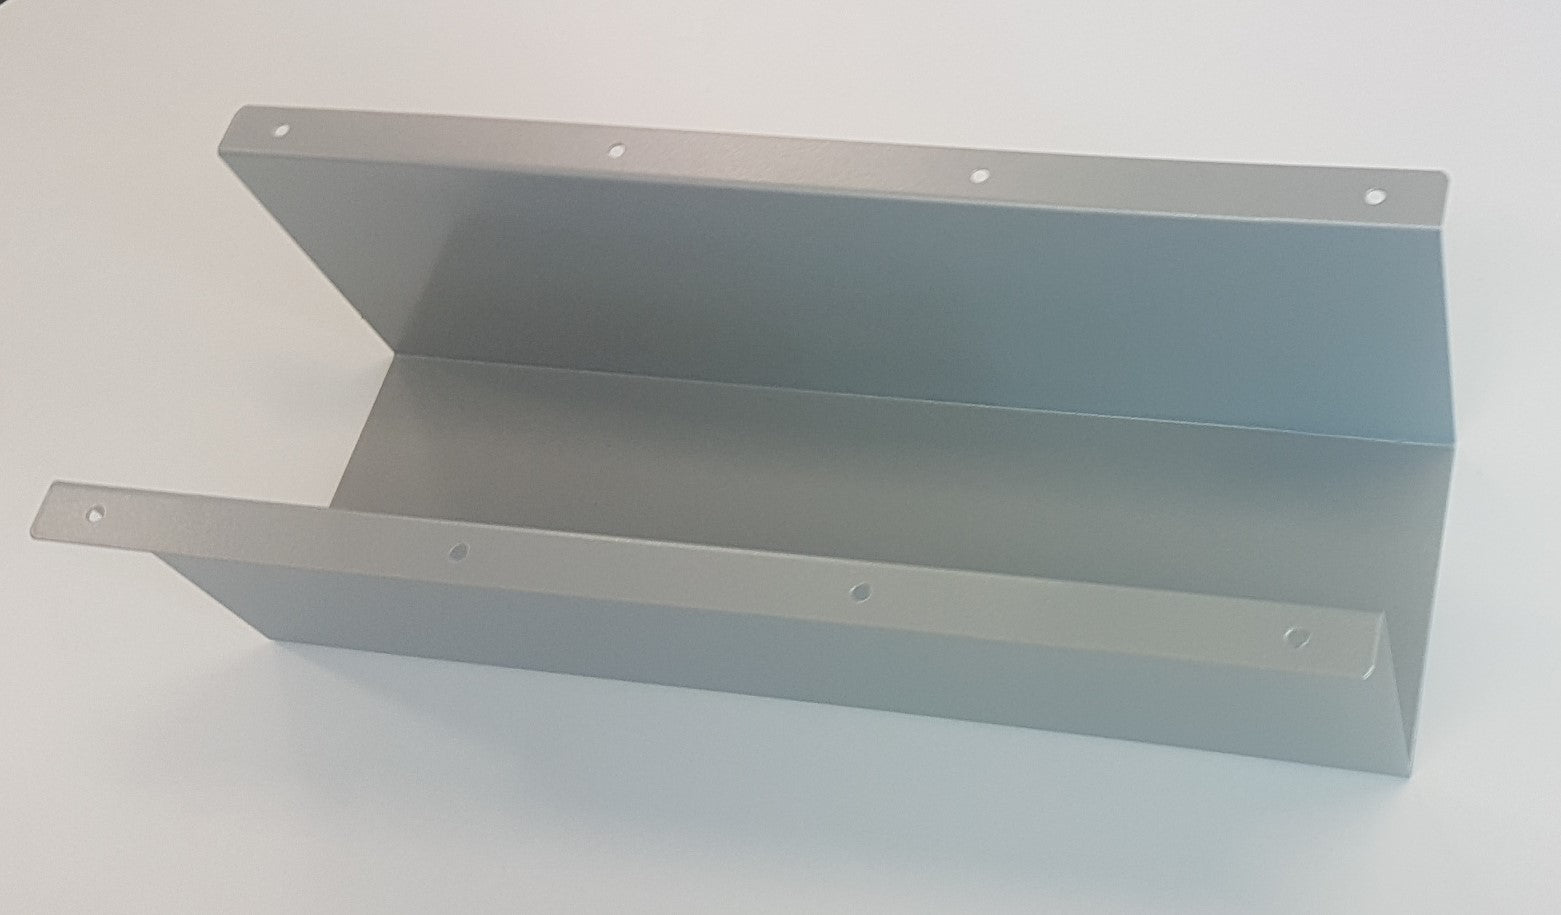 Cable Tray for Copenhagen / Evolve Contoured Desk